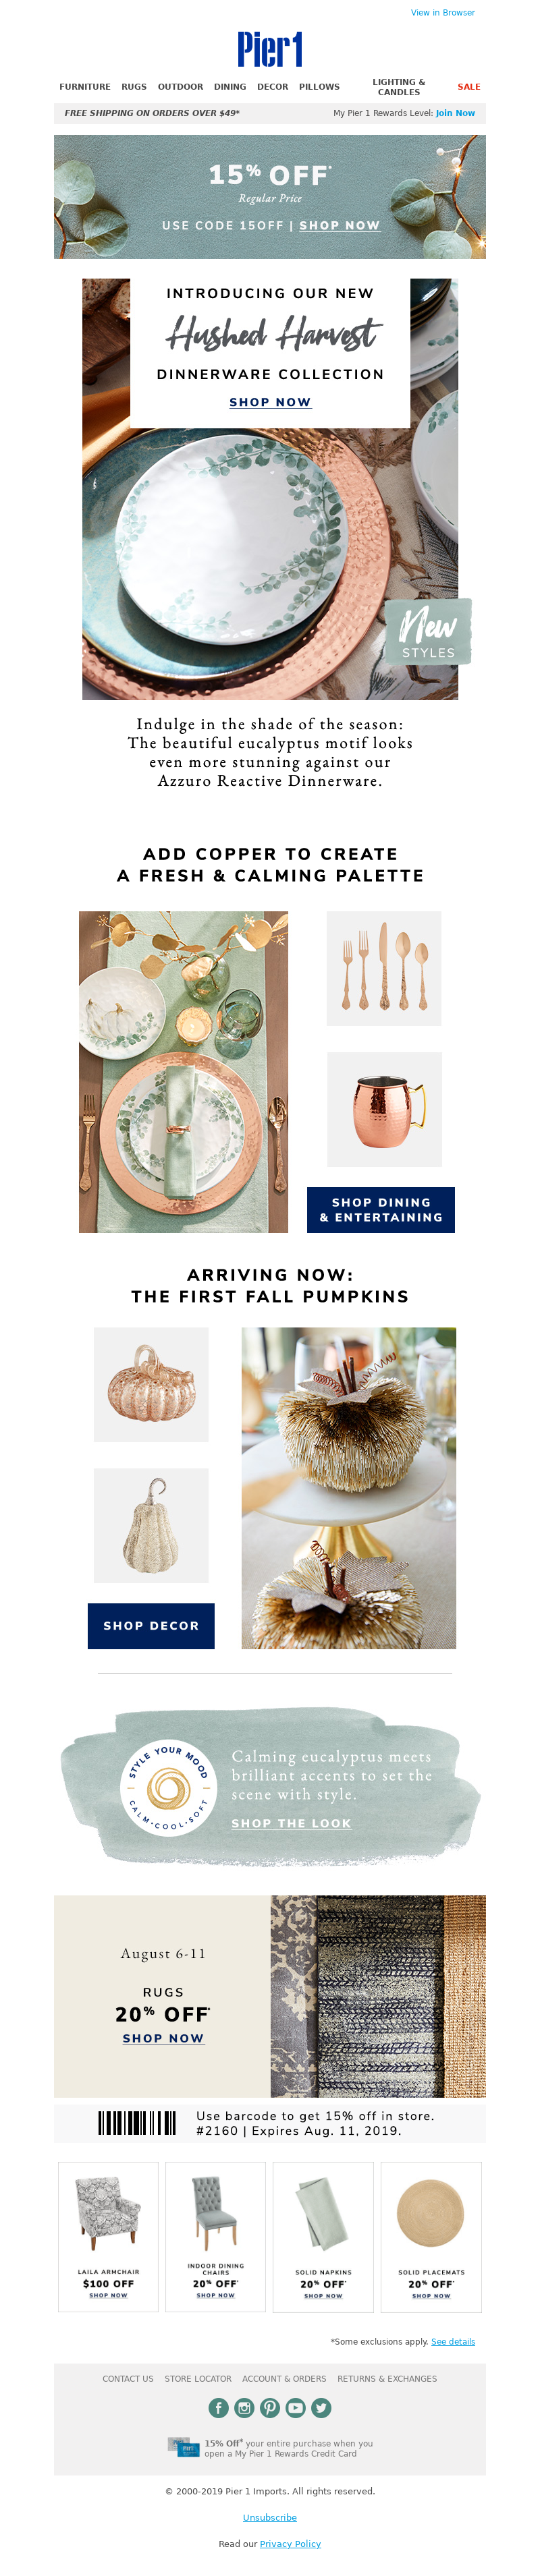 Pier 1 Imports - The shade of the season is S-T-U-N-N-I-N-G in our new Hushed Harvest Dinnerware.